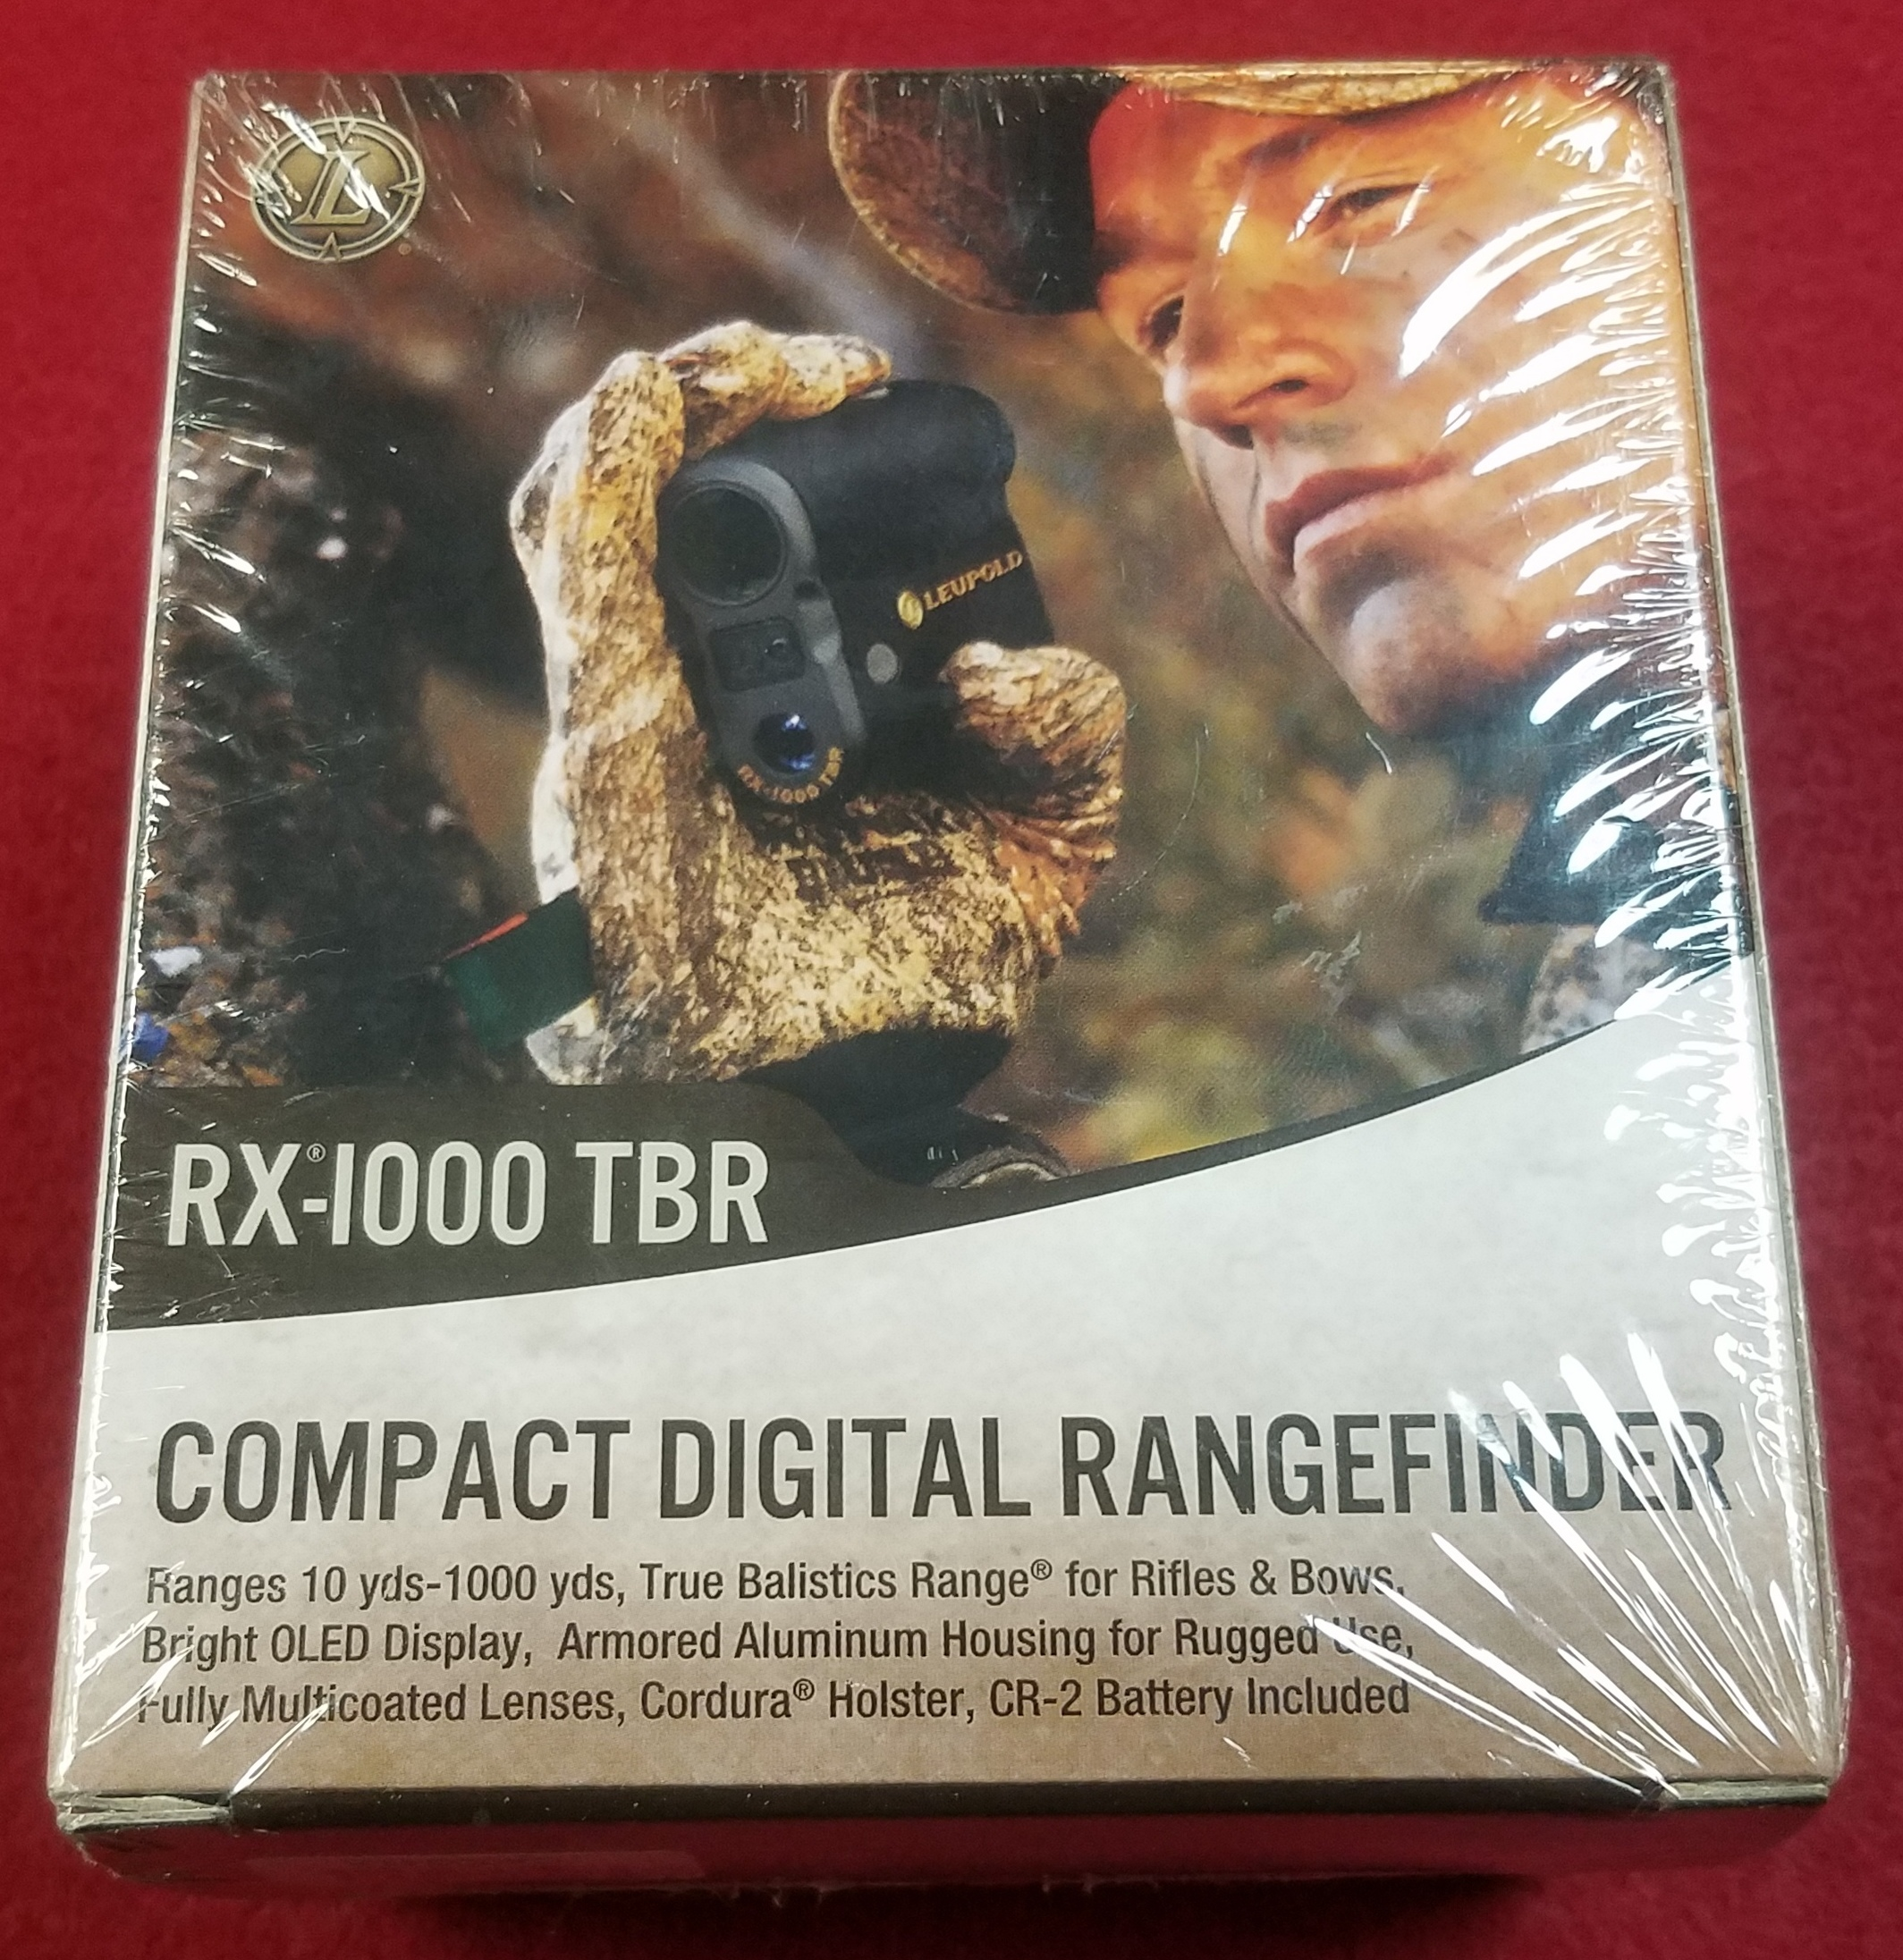 EUPOLD - RX-1000 TBR - COMPACT DIGITAL RANGE FINDER - NEW IN BOX